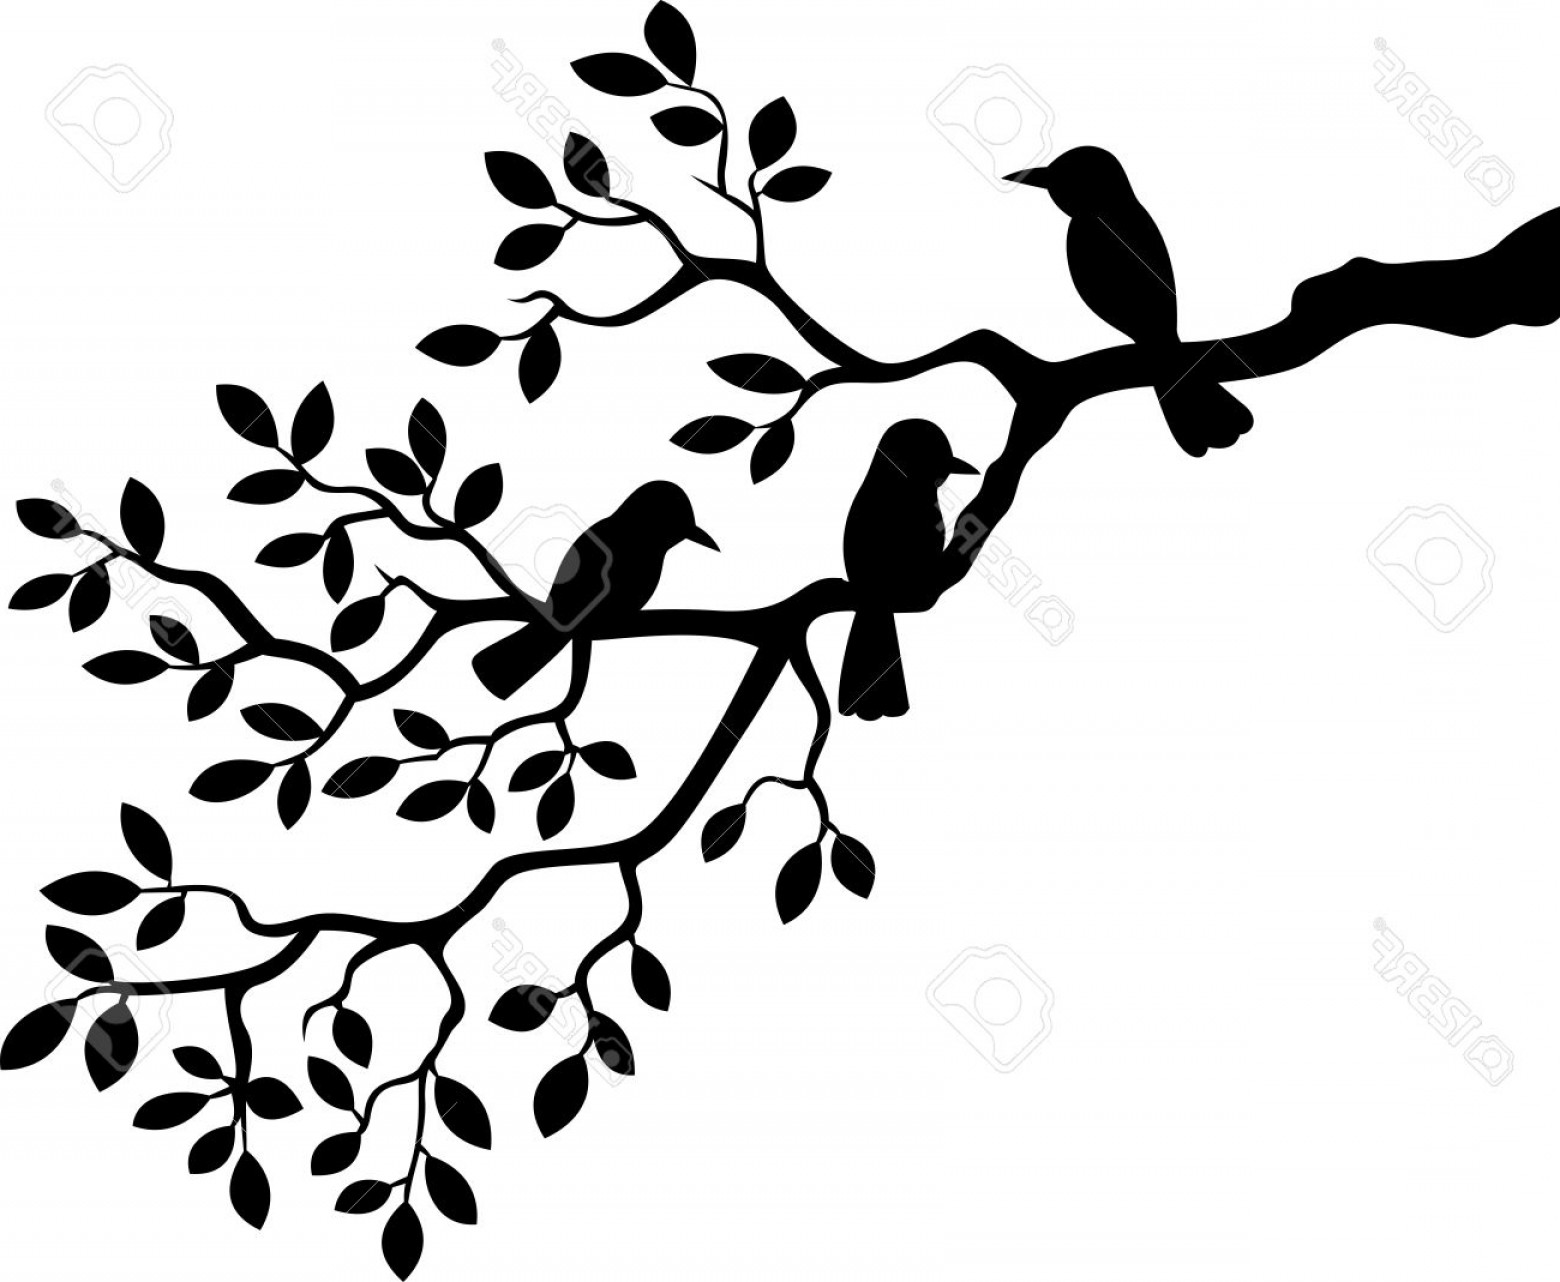 Contoon Free Black Vector Tree: Photostock Vector Cartoon Tree Branch With Bird Silhouette